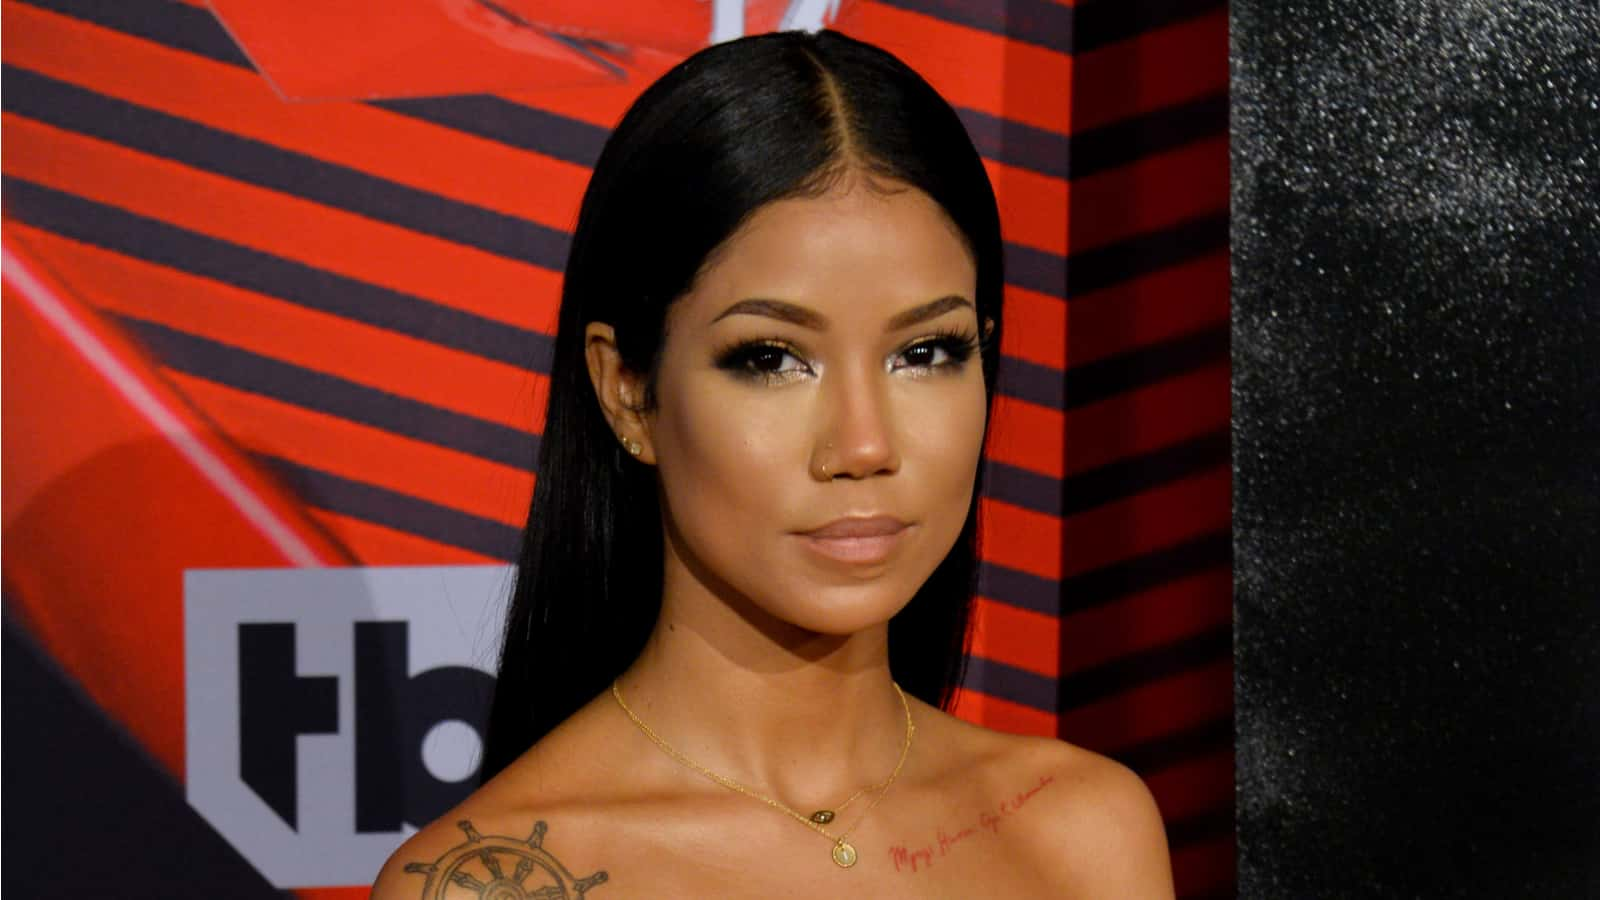 Jhene Aiko Talks New Music & Being 'Skinny, but Still Insecure'